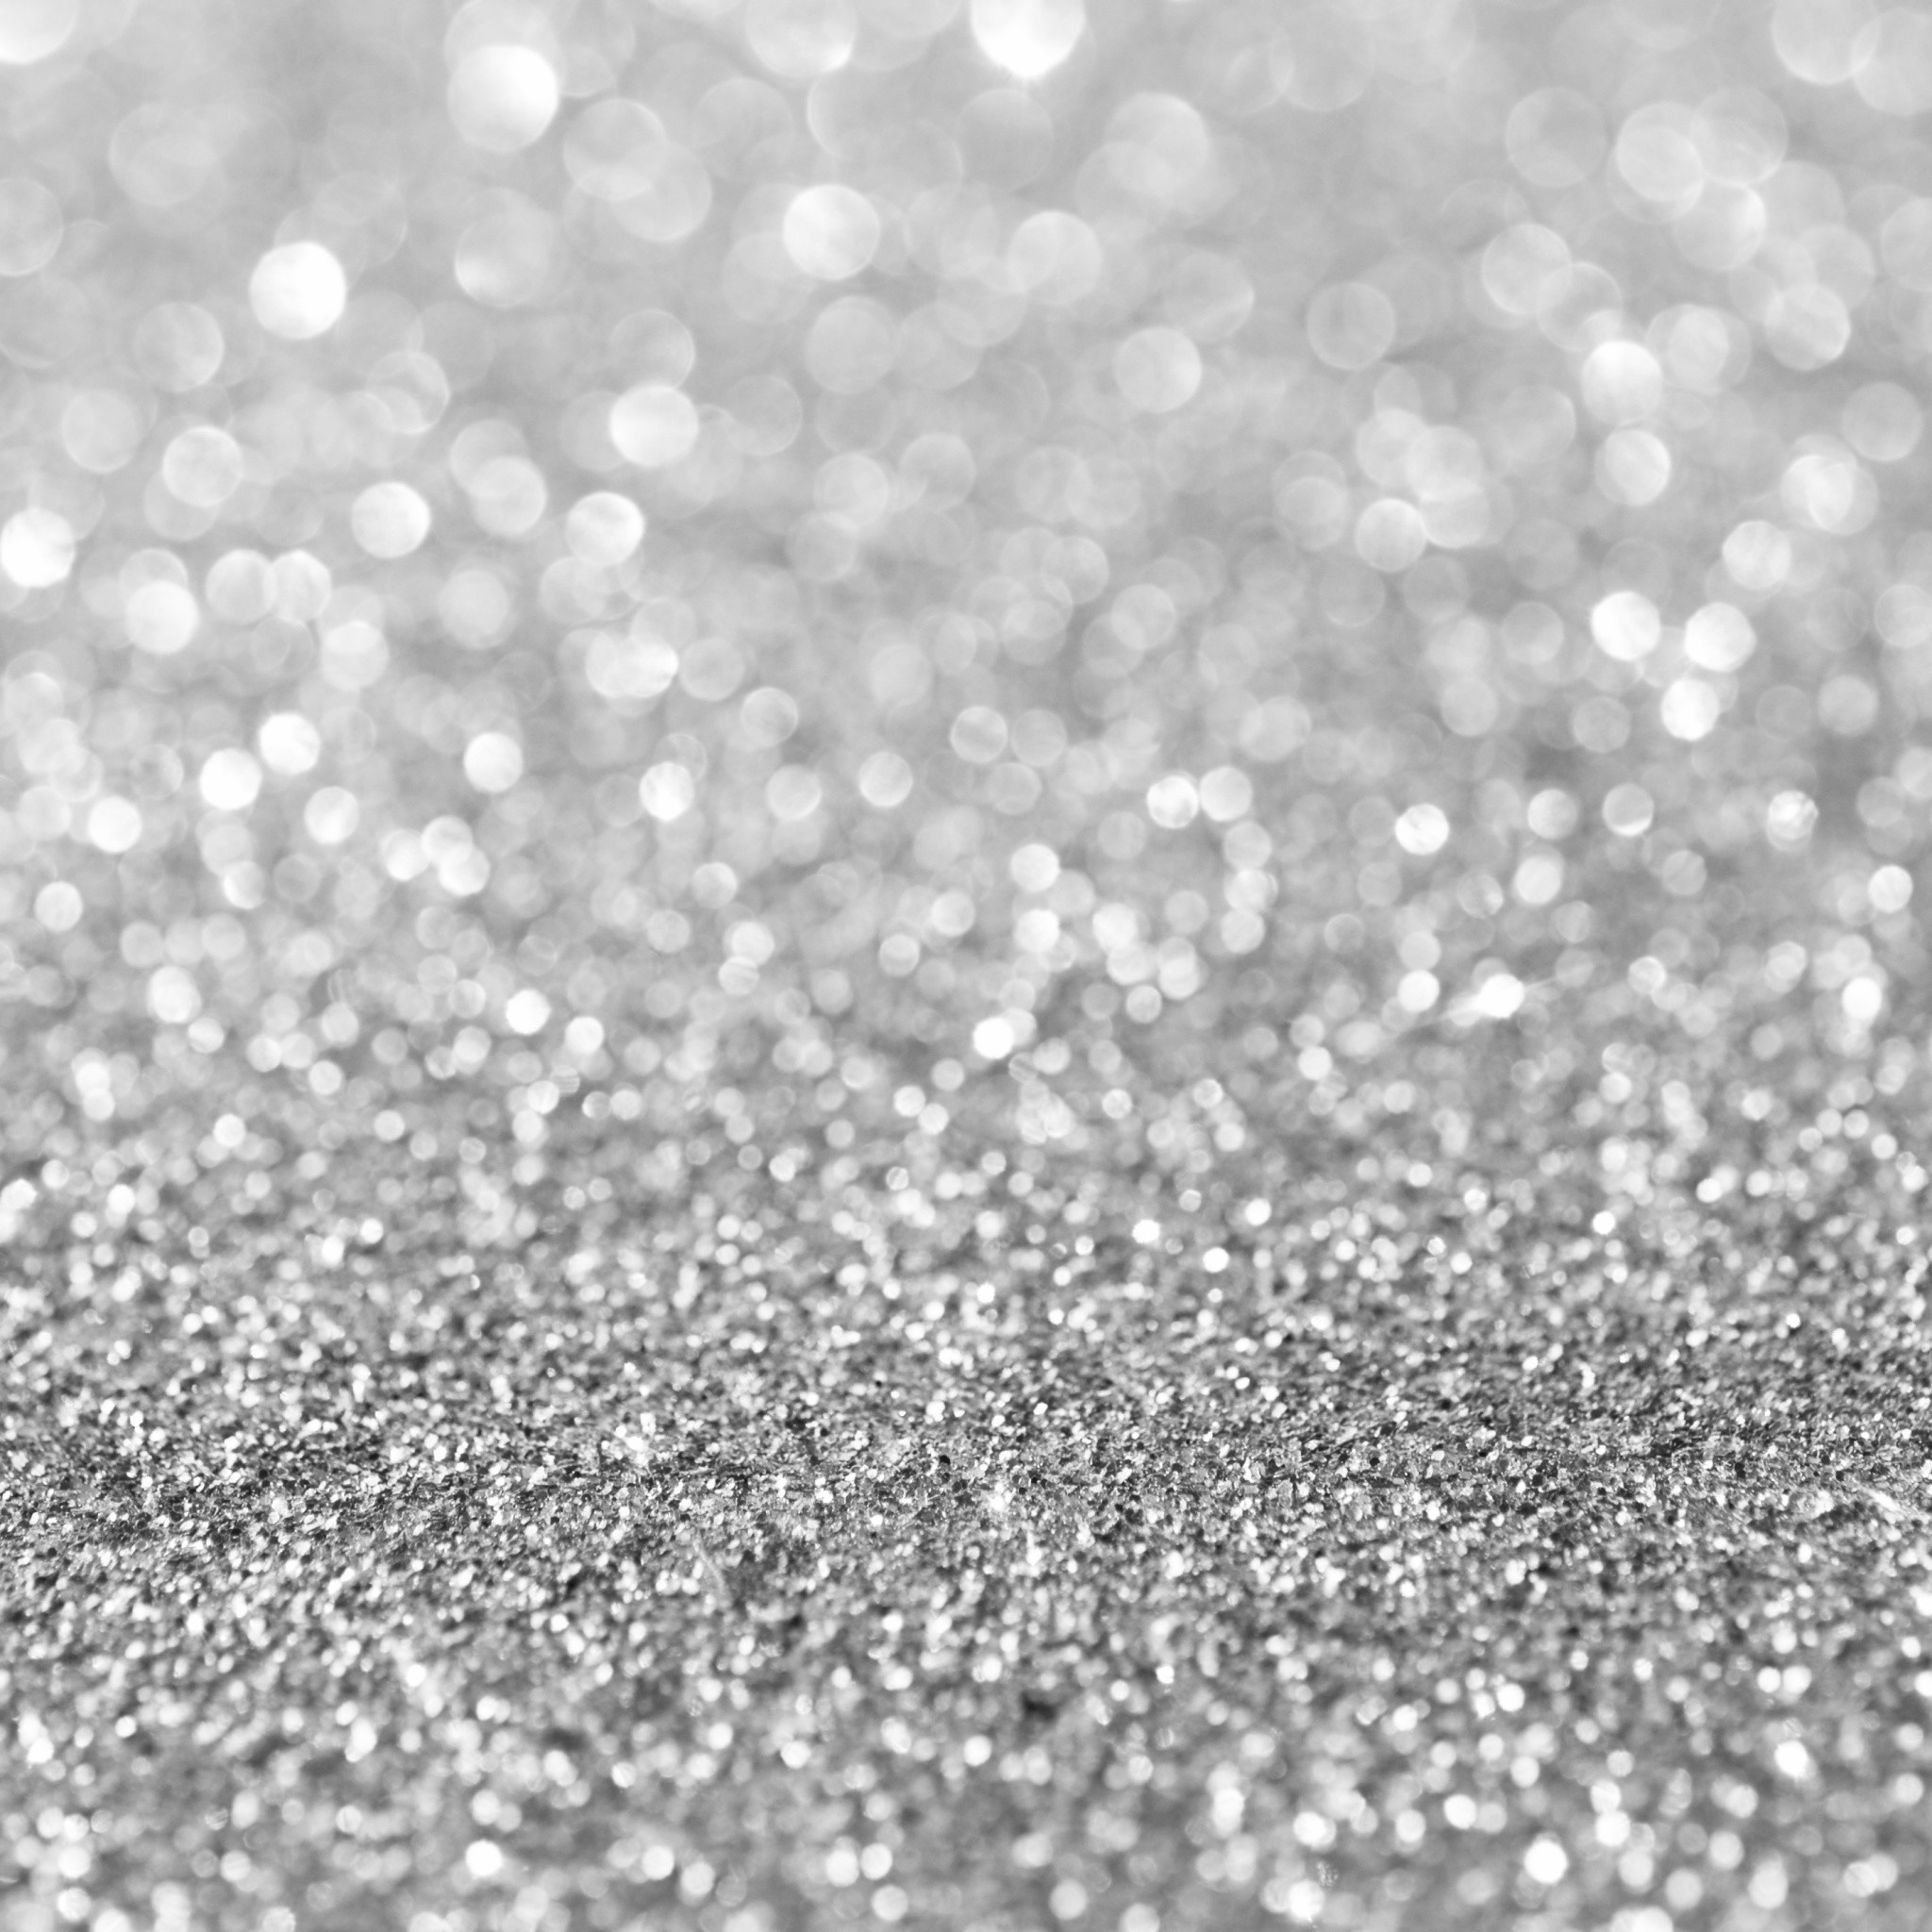 Sparkling Silver Silvers: Silver Glitter Wallpaper (13+ Images